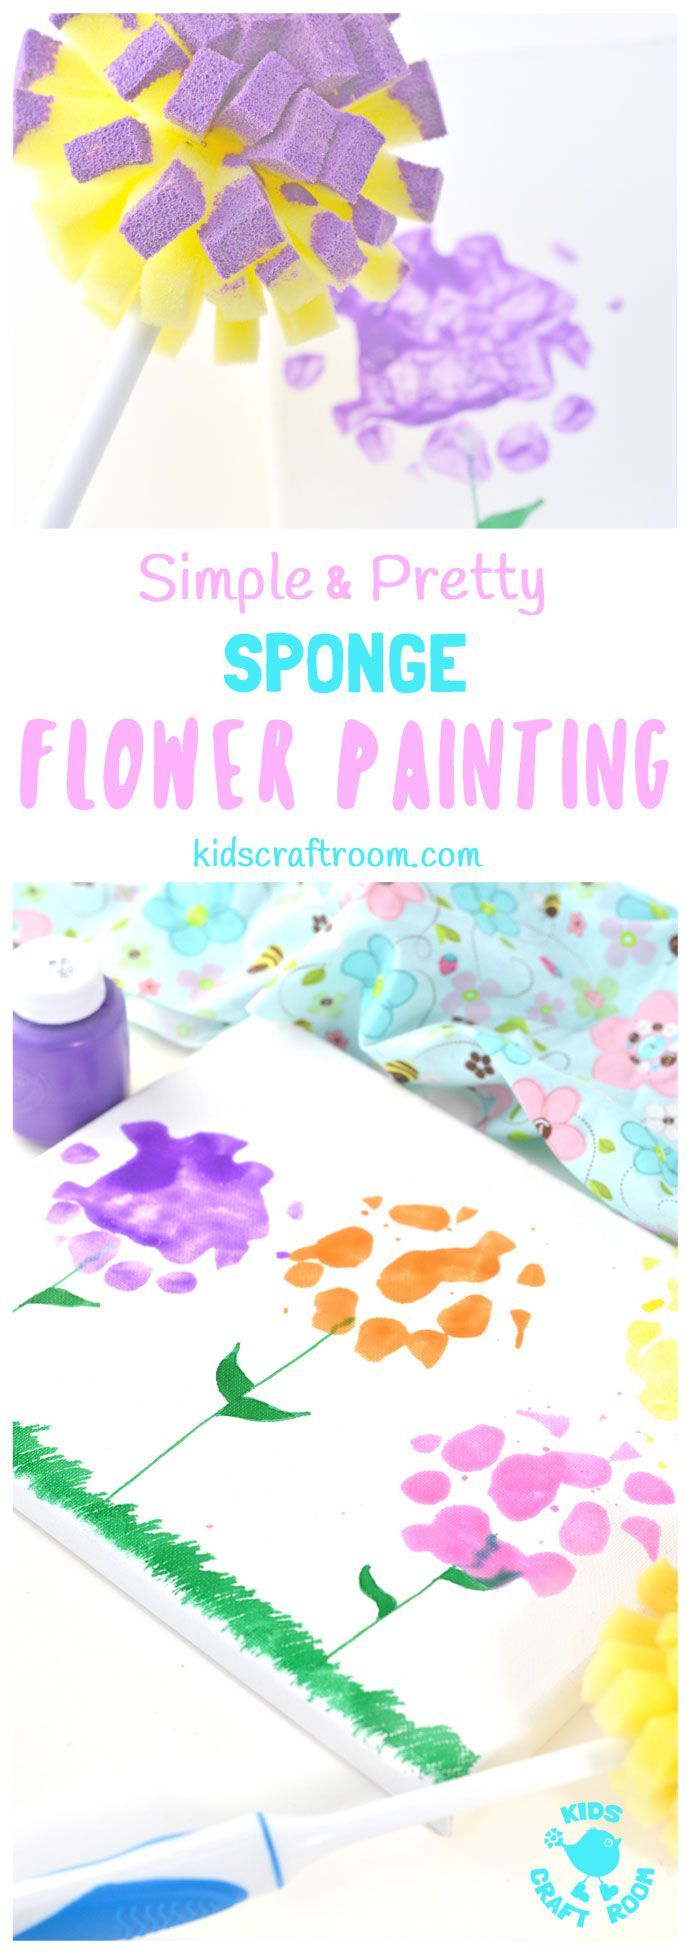 SPONGE FLOWER PAINTING - simple, easy and creates the prettiest flower pictures! This flower art is great for kids of all ages and is a wonderful way to celebrate Spring and Summer. Make wall art, greeting cards or gorgeous Mother's Day gifts,these painted flowers won't fail to delight. #flowers #flowercrafts #flowerart #kidsart #kidspainting #paintingforkids #paintingideas #paintingtechniques #artforkids #kidscrafts #craftsforkids #kidscraftroom #springcrafts #summercrafts via…